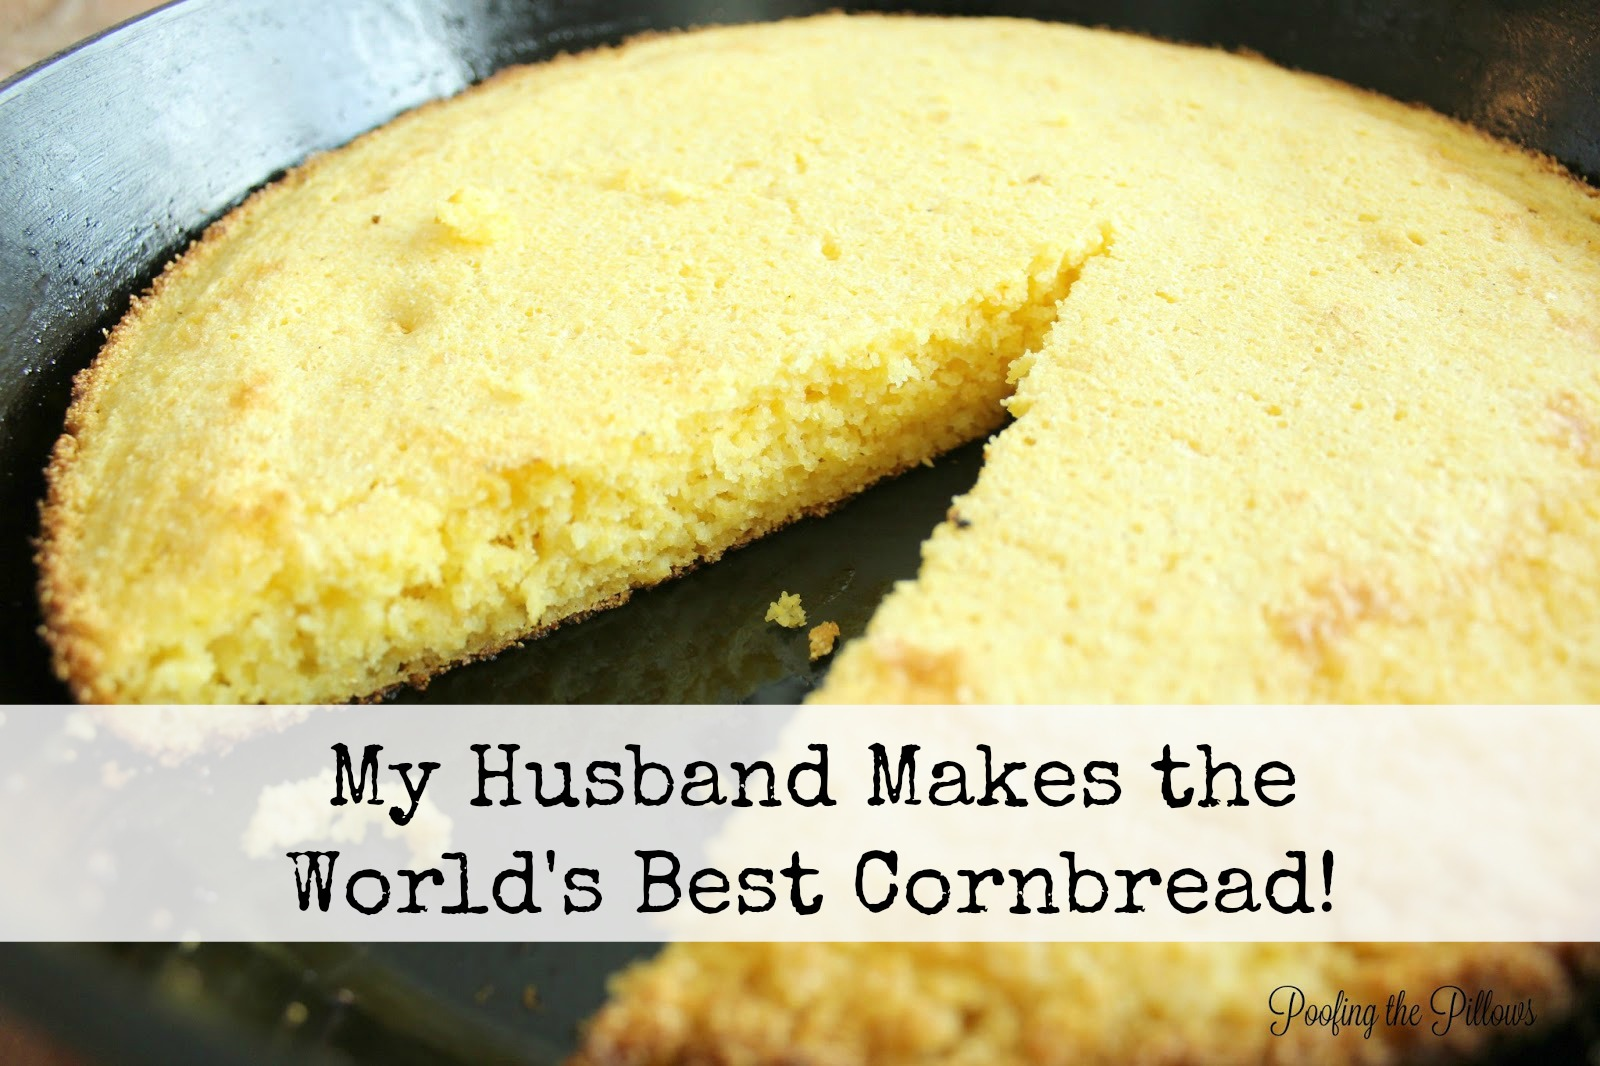 southern style cornbread cooked in a cast iron skillet, how to make cornbread in a cast iron skillet, the secret ingredient is bacon grease!